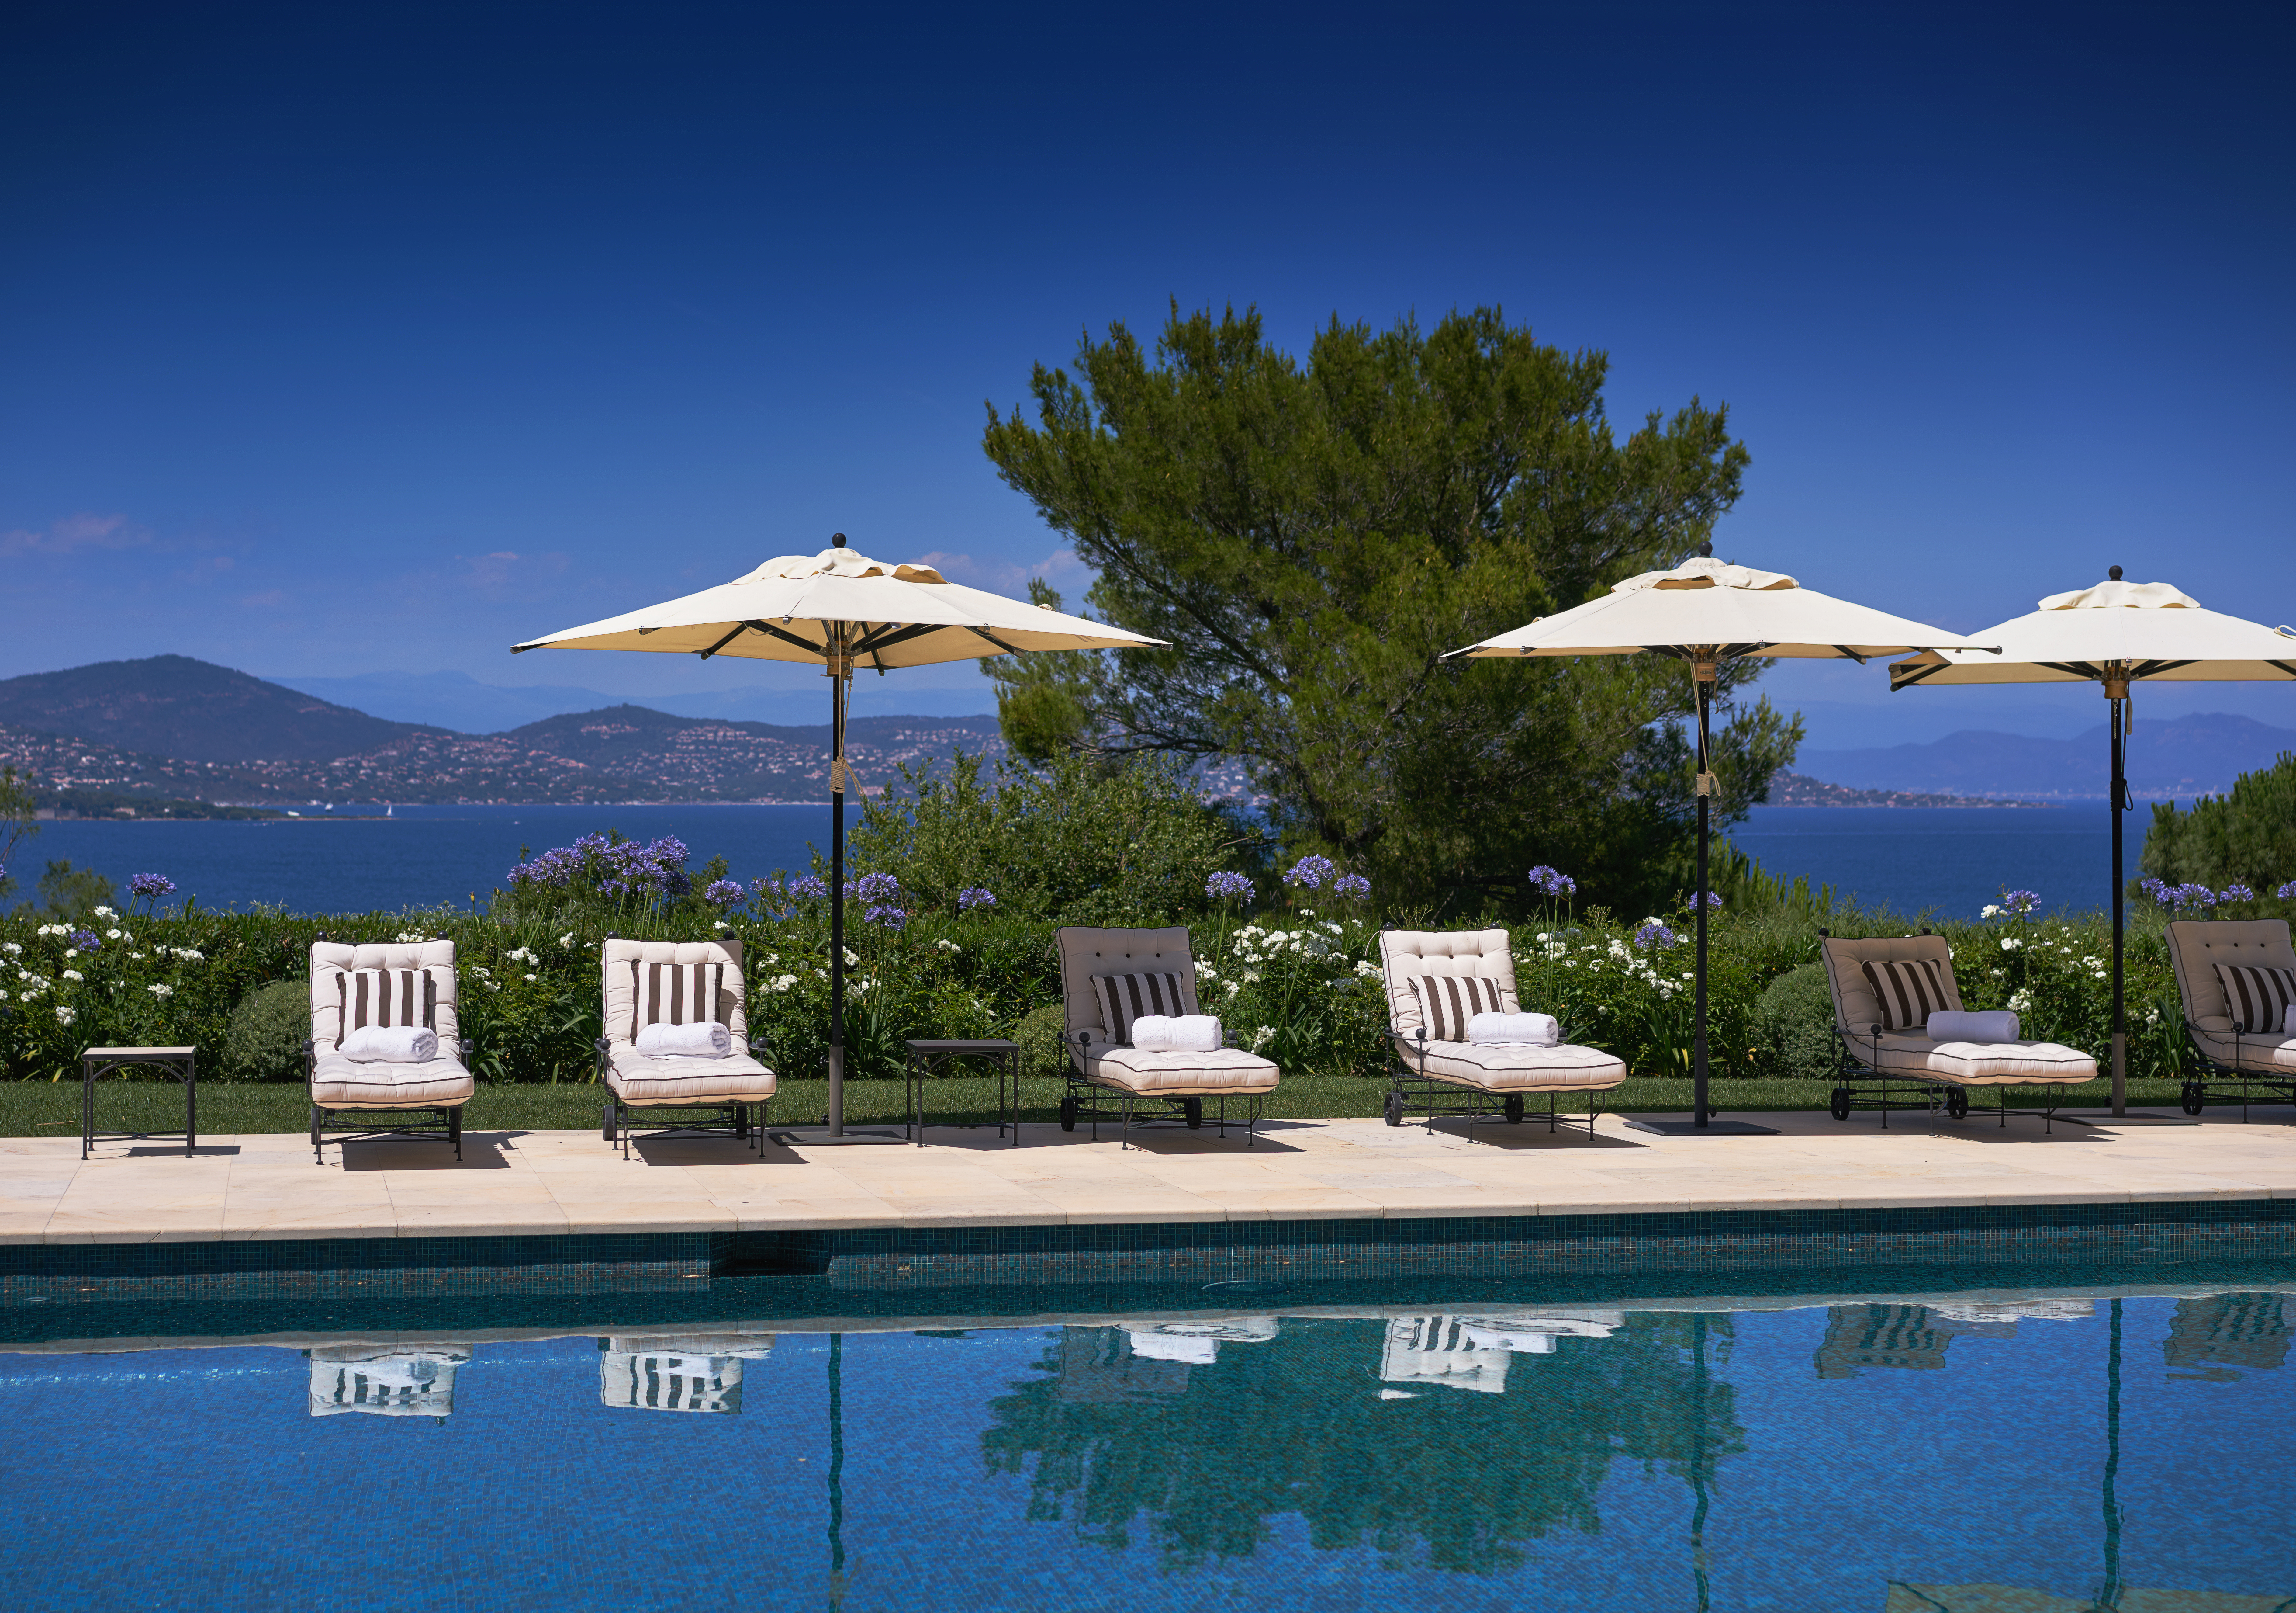 Exceptional private residence for sale, located in Les Parcs of Saint Tropez https://www.beauchamp.com/buy-property/france/st-tropez-for-sale/villa-sale-exceptional-residence-cab1699